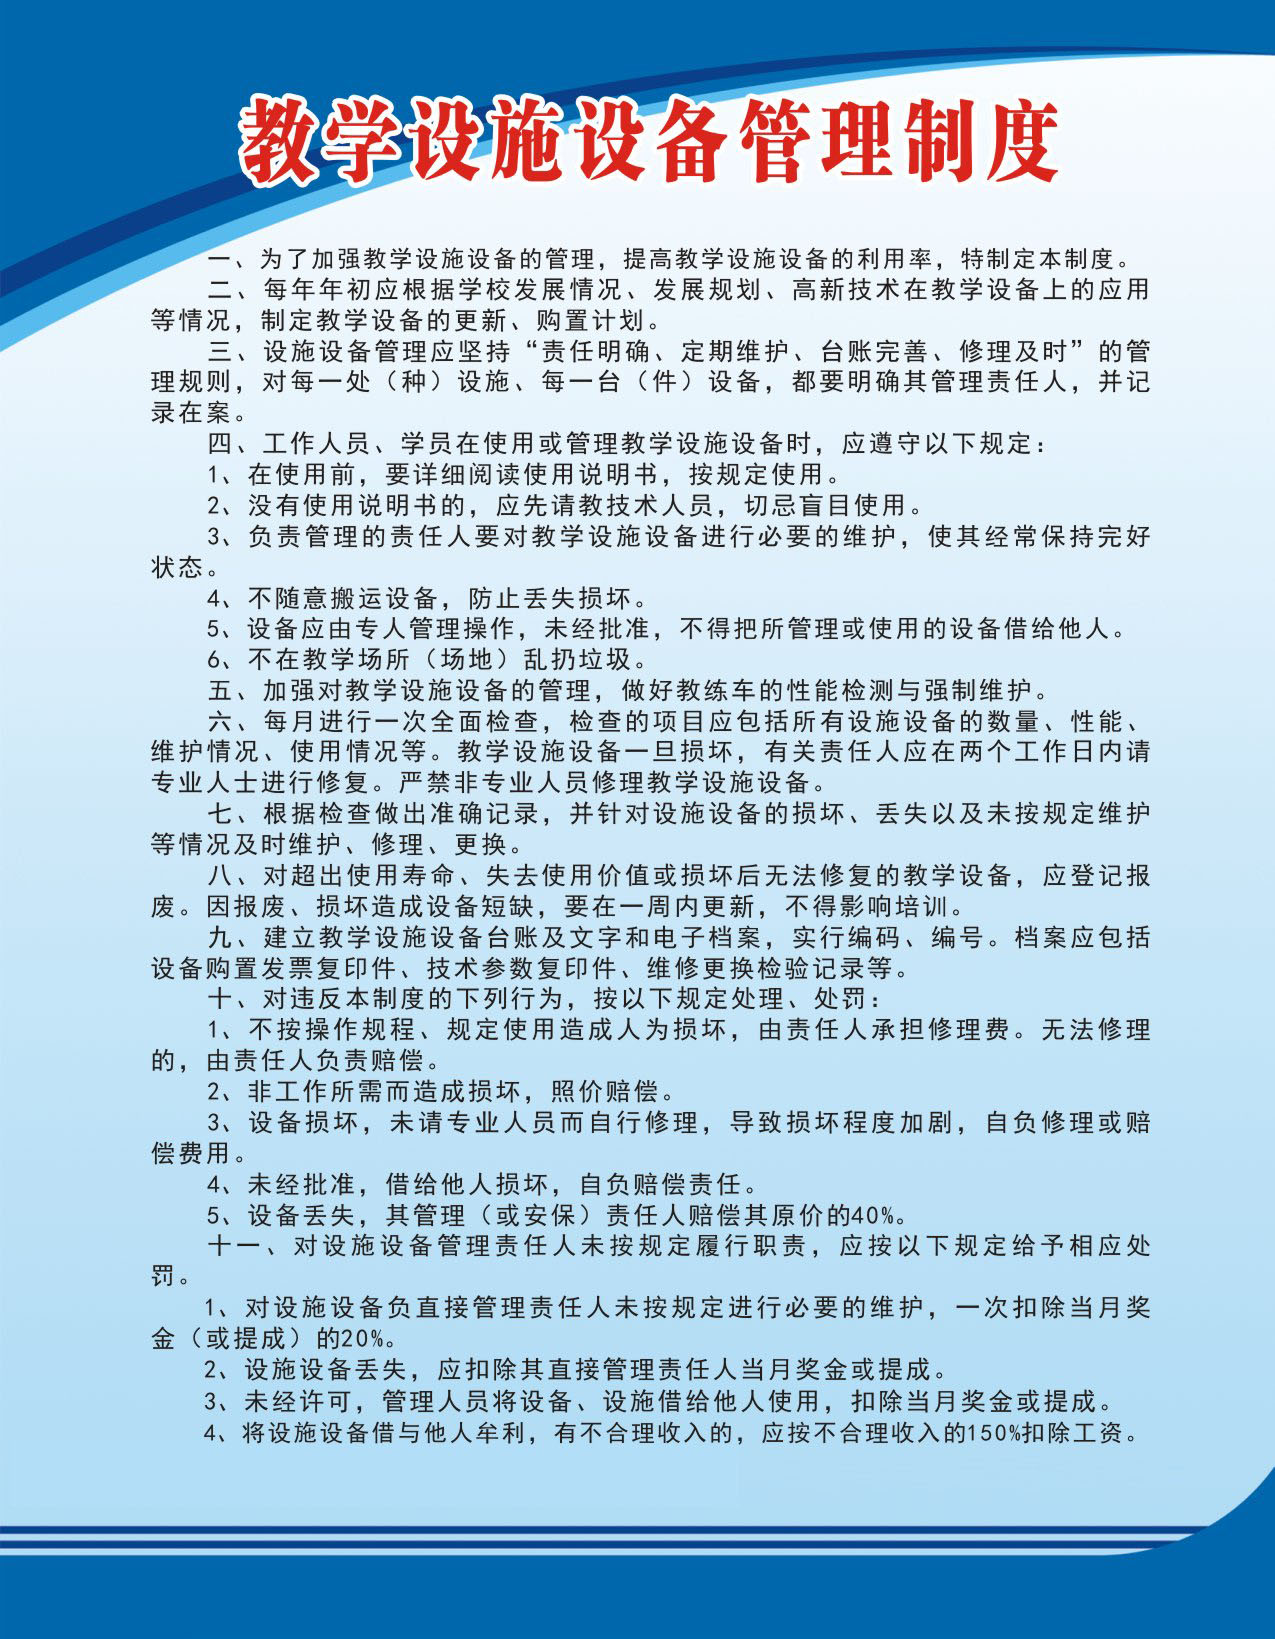 725 posters printed photo printing 1084 12 teaching facilities for driving teaching system management system